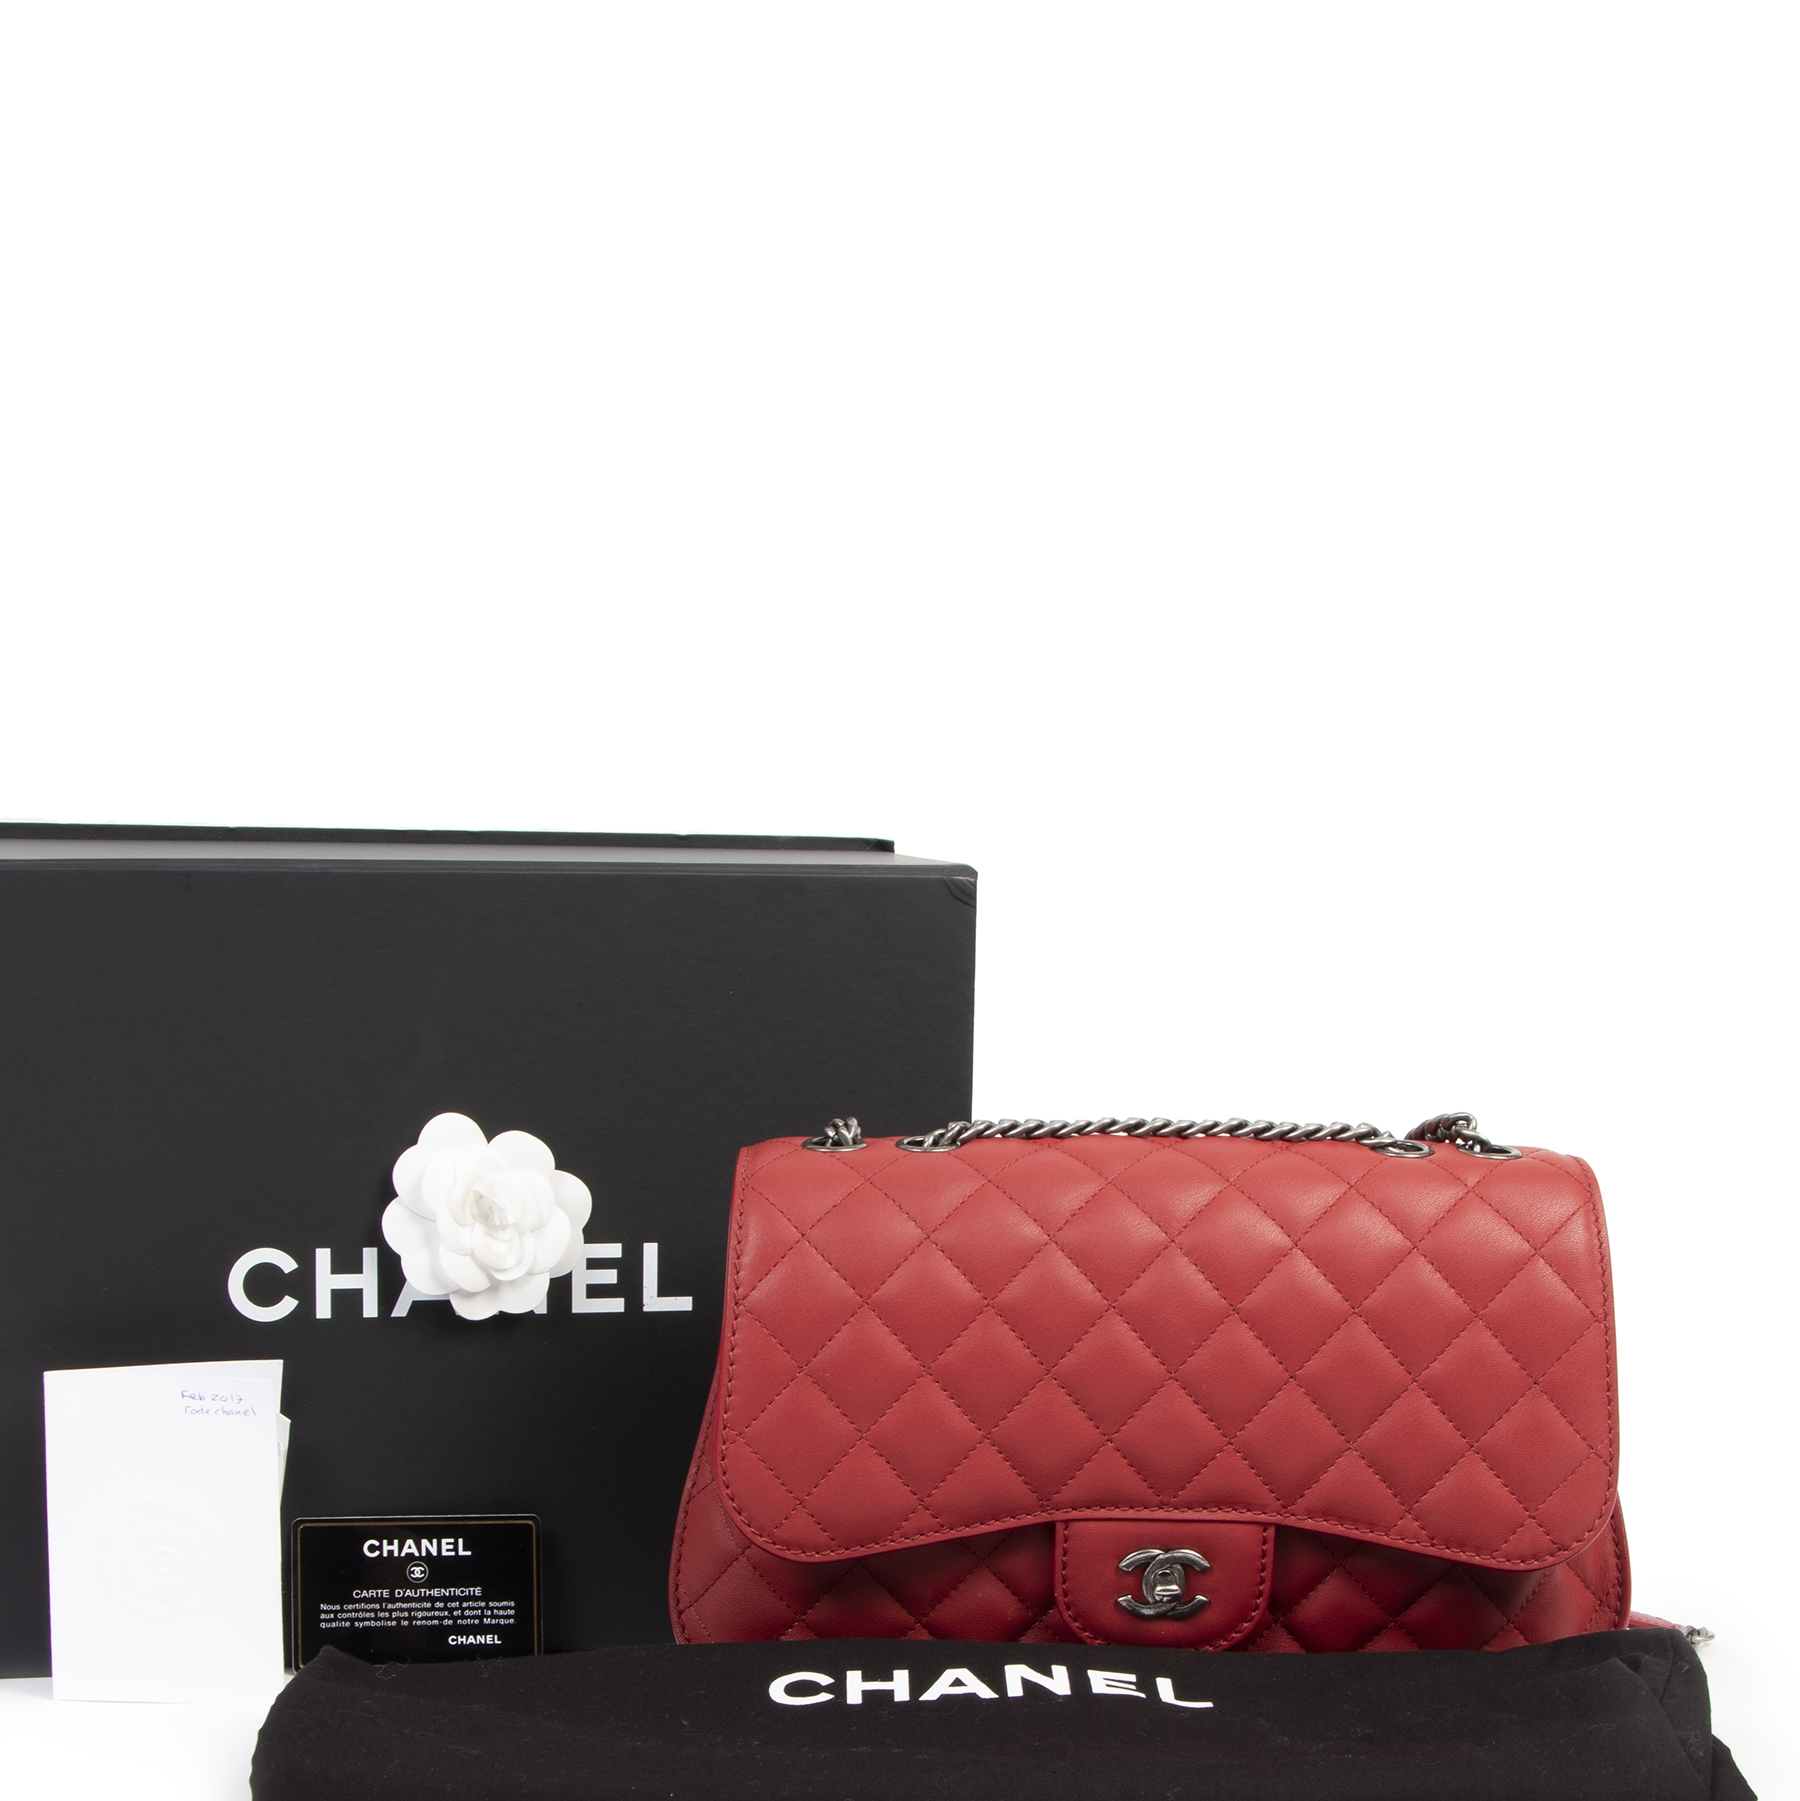 Chanel Red Sheepskin Flap Bag